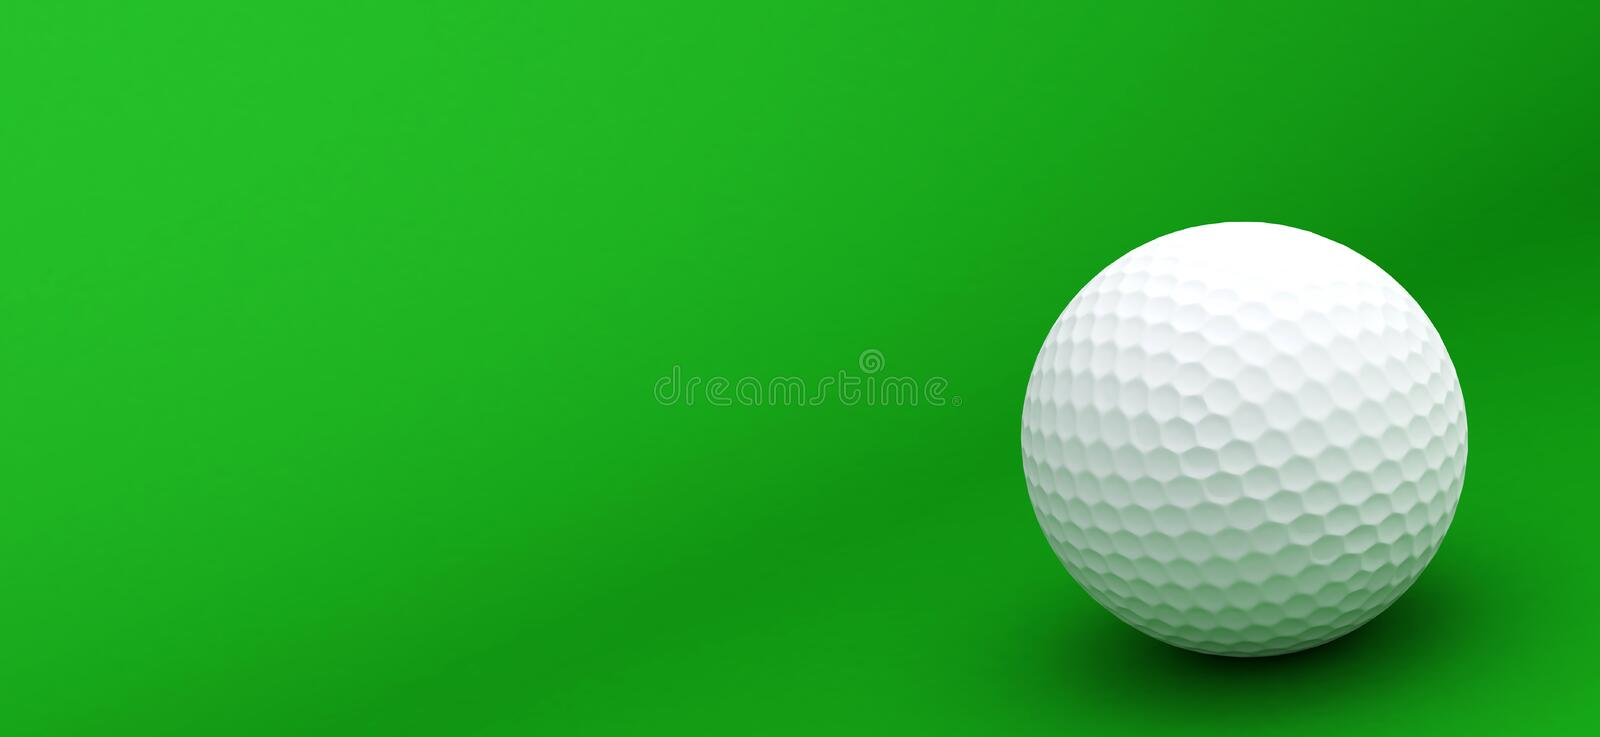 Download Golf ball stock image. Image of outdoor, club, competition - 5009653